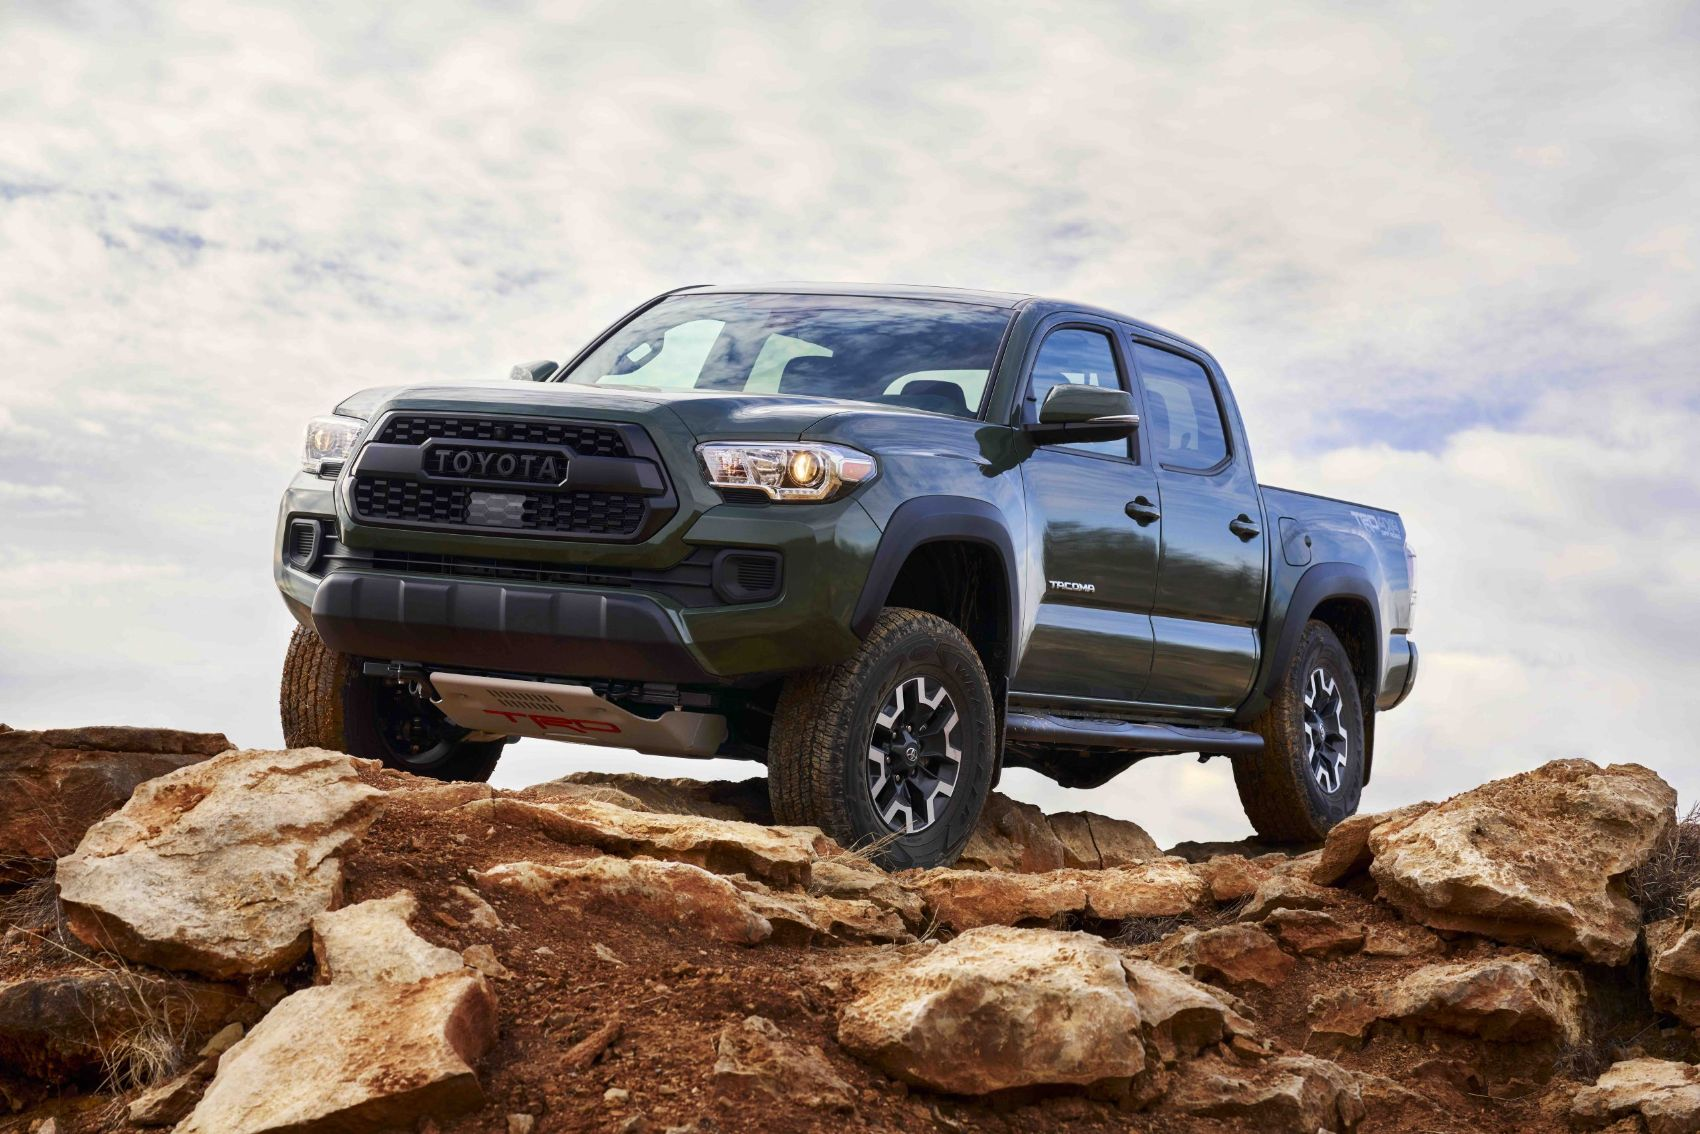 Toyota Tacoma TRD Lift Kit Debuts With New Bilstein Shocks & Cast-Iron Spacers